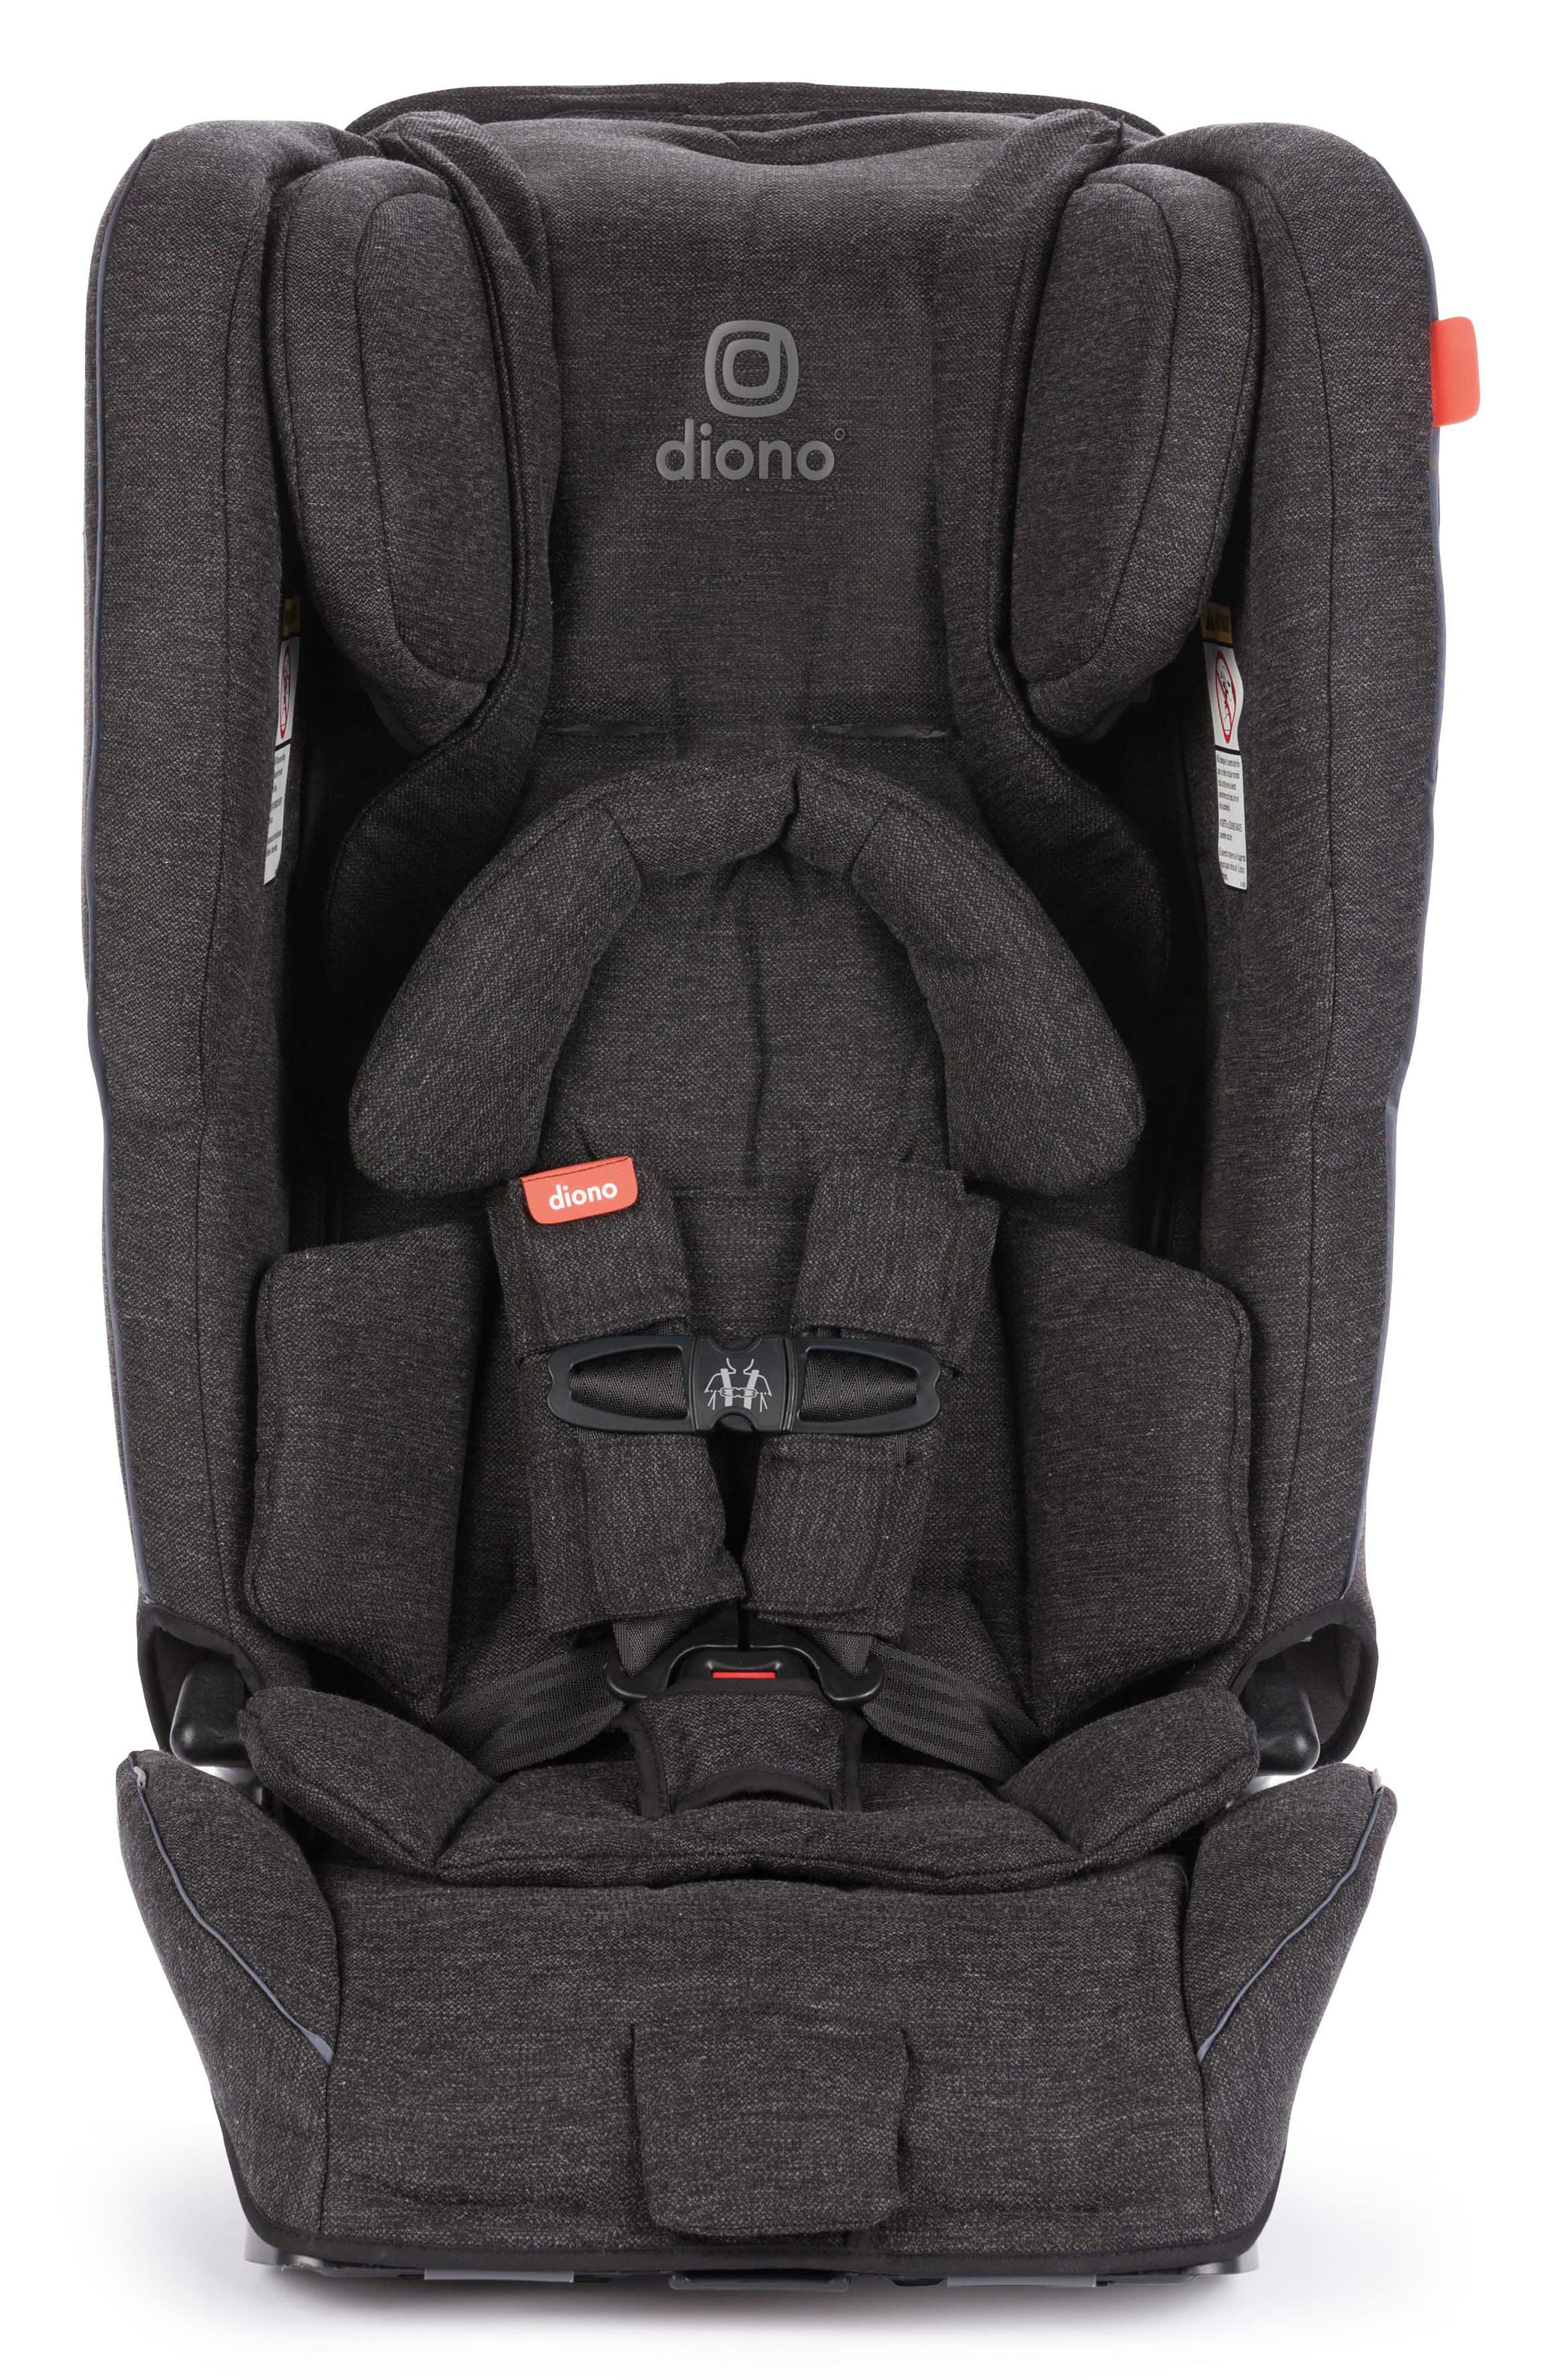 Infant Diono Rainier 2 Axt Car Seat